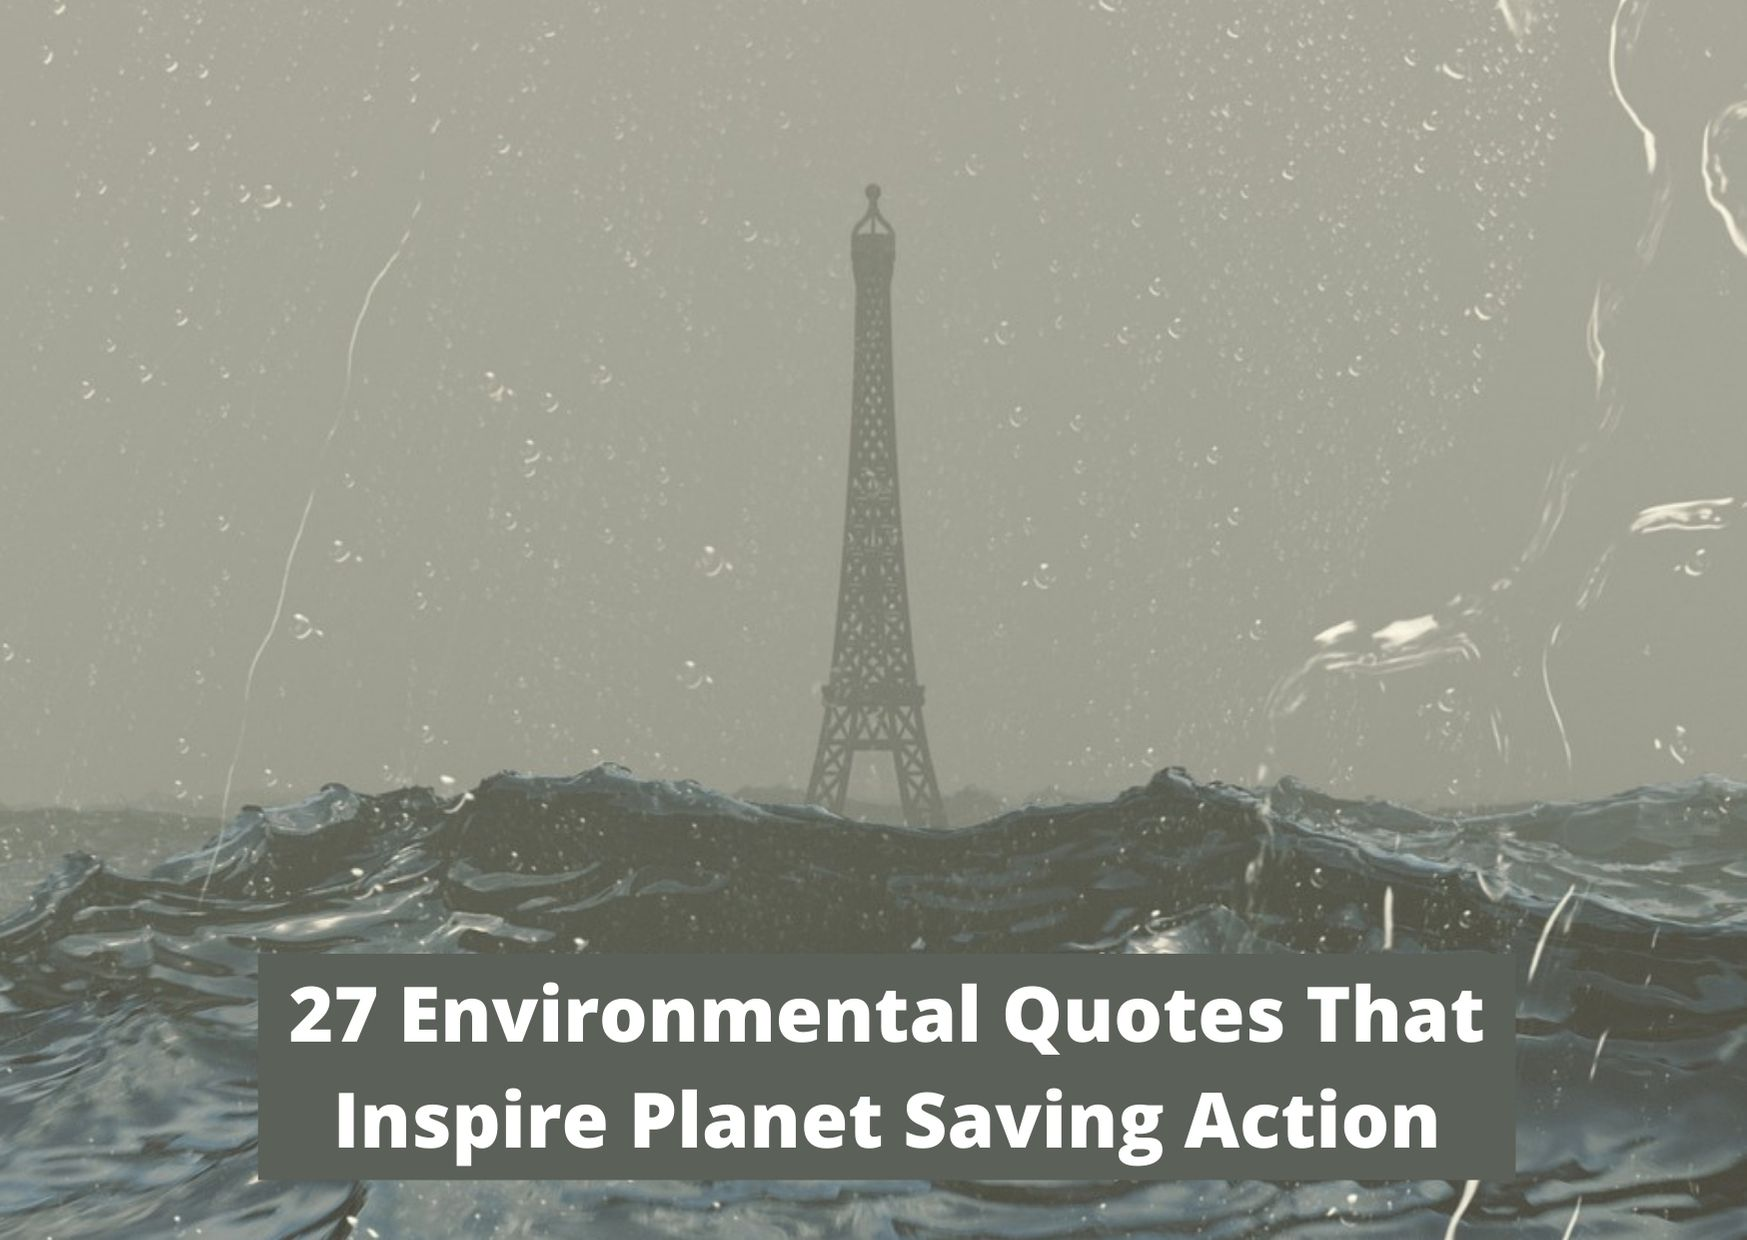 27 Environmental Quotes That Inspire Planet Saving Action